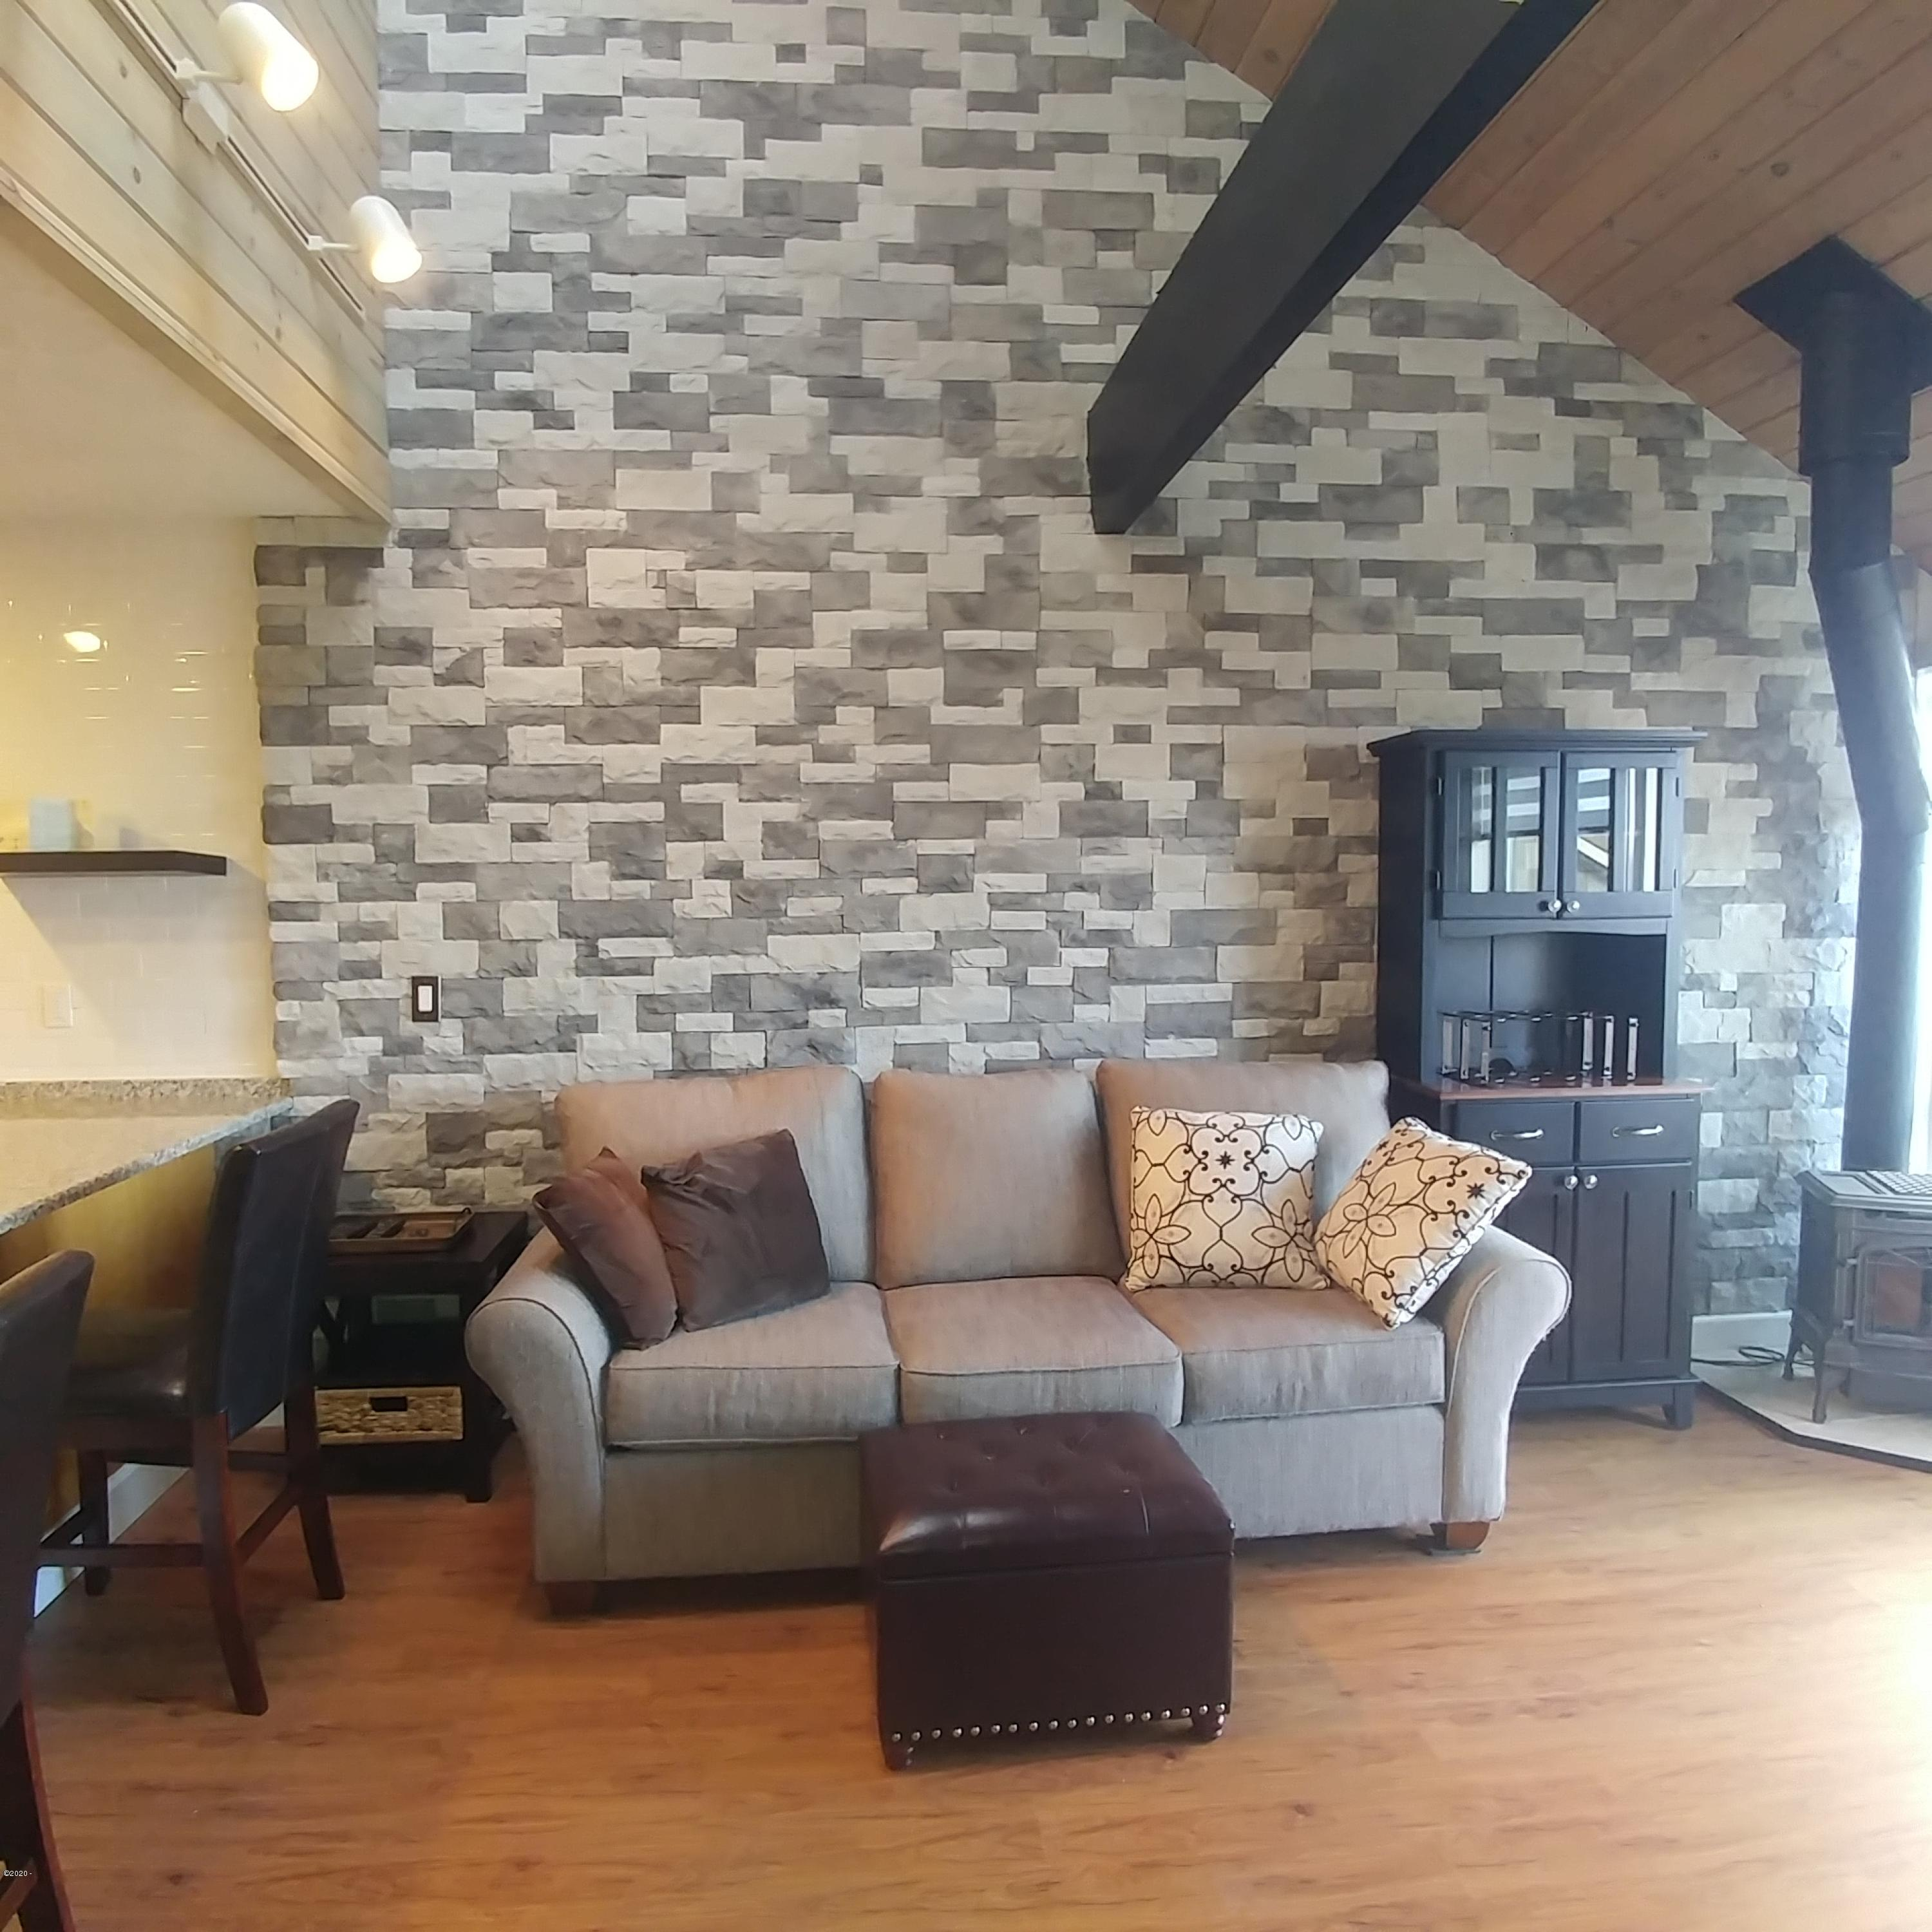 1000 SE Bay Blvd, 436, Newport, OR 97365 - Gorgeous wall